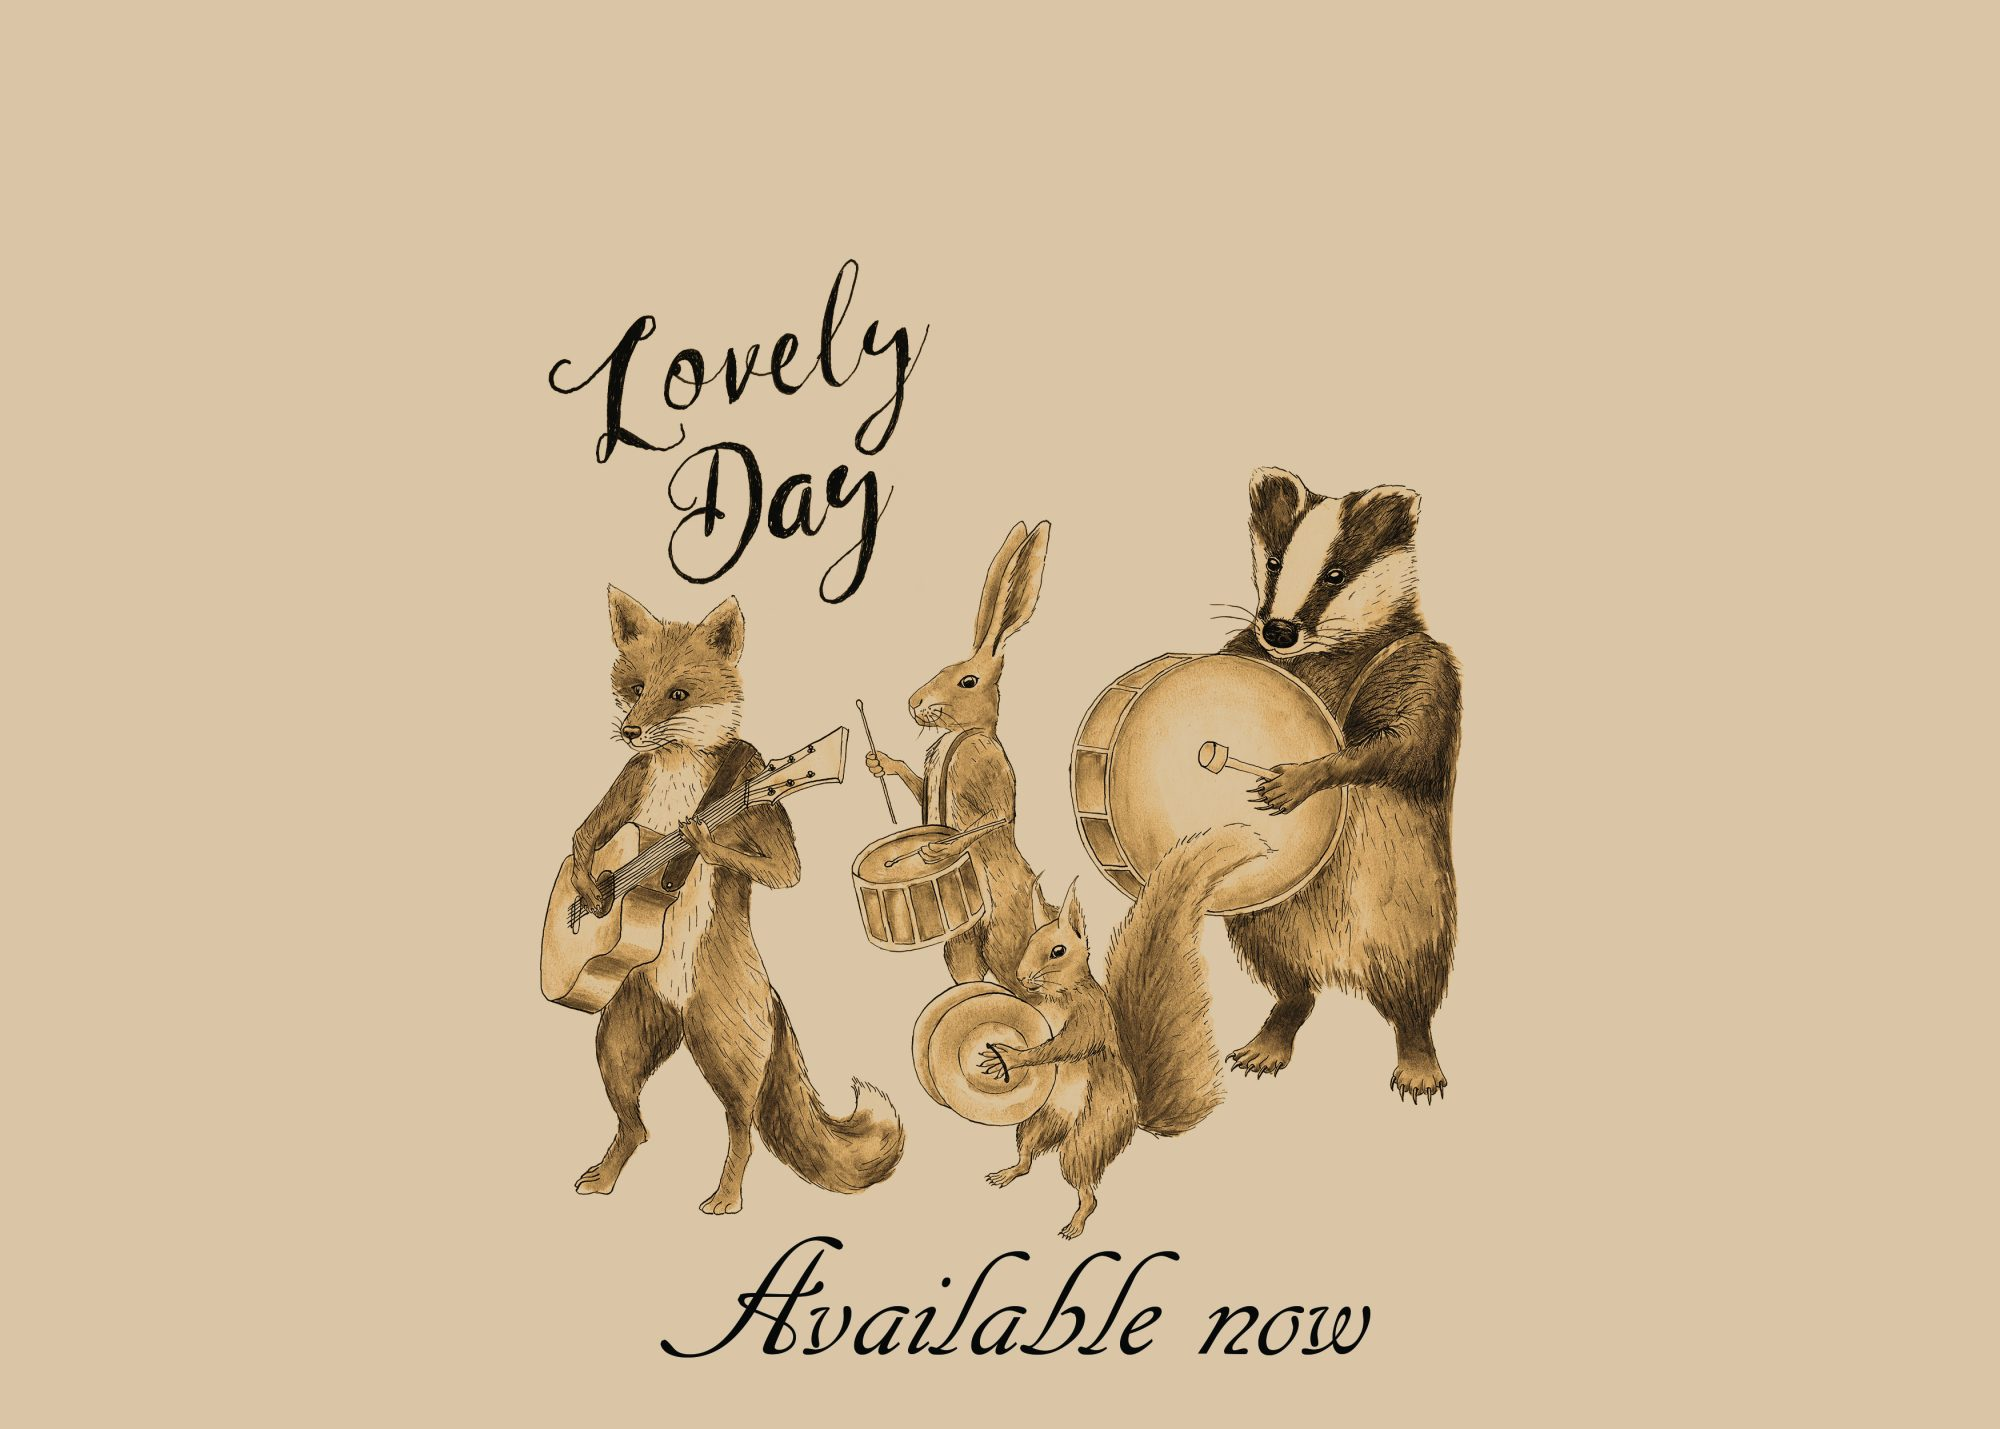 Lovely Day website banner